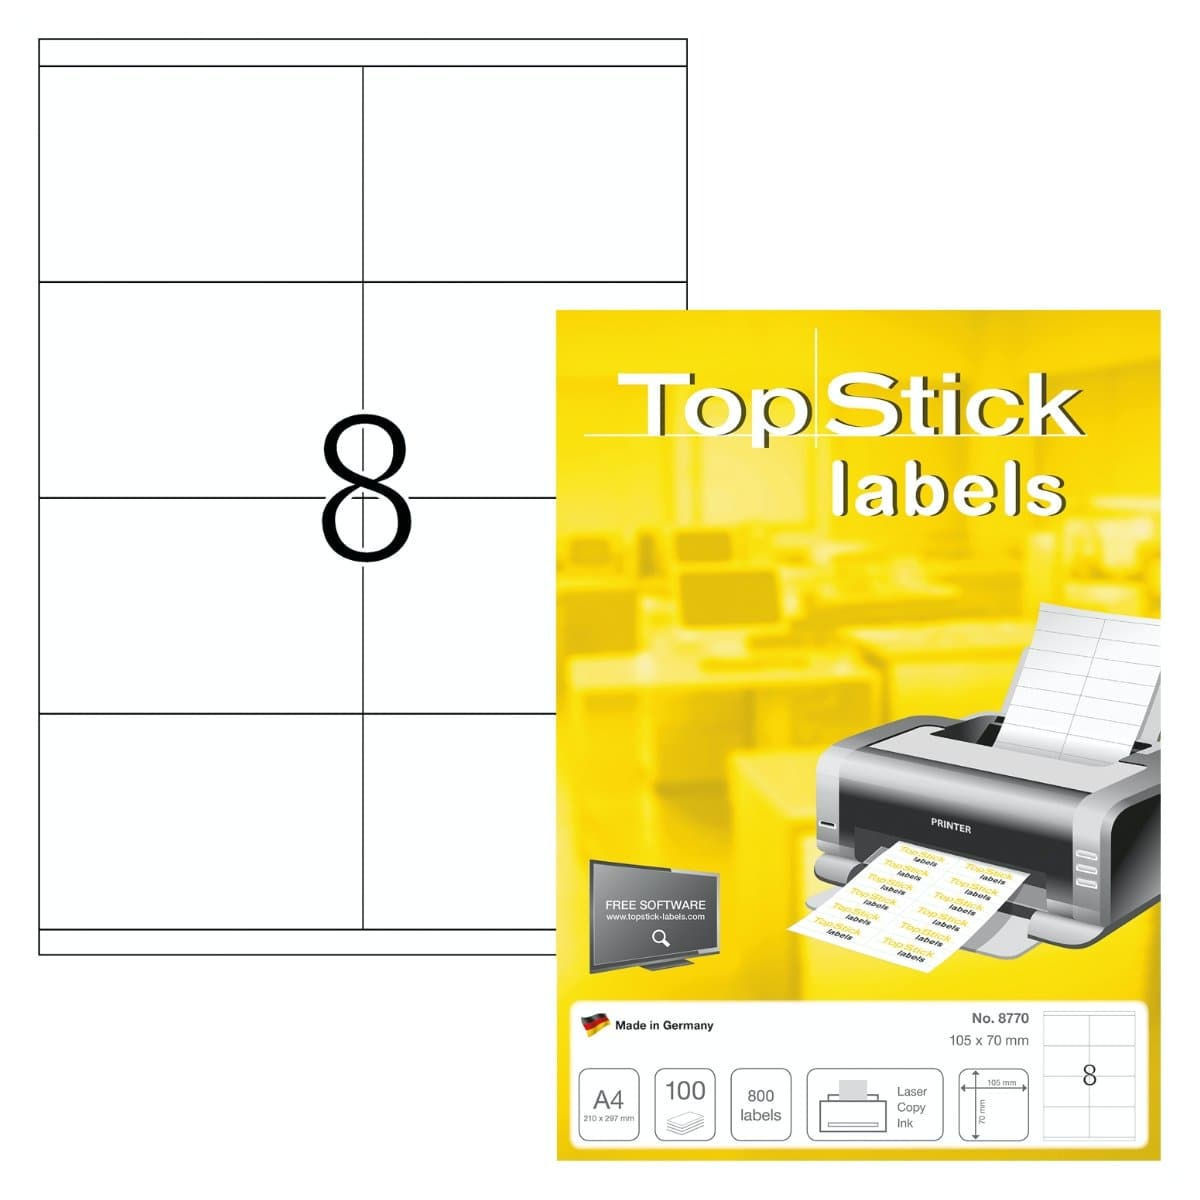 TopStick labels 8 labels/sheet, sharp corners, 105 x 70 mm, 100sheets/pack, White